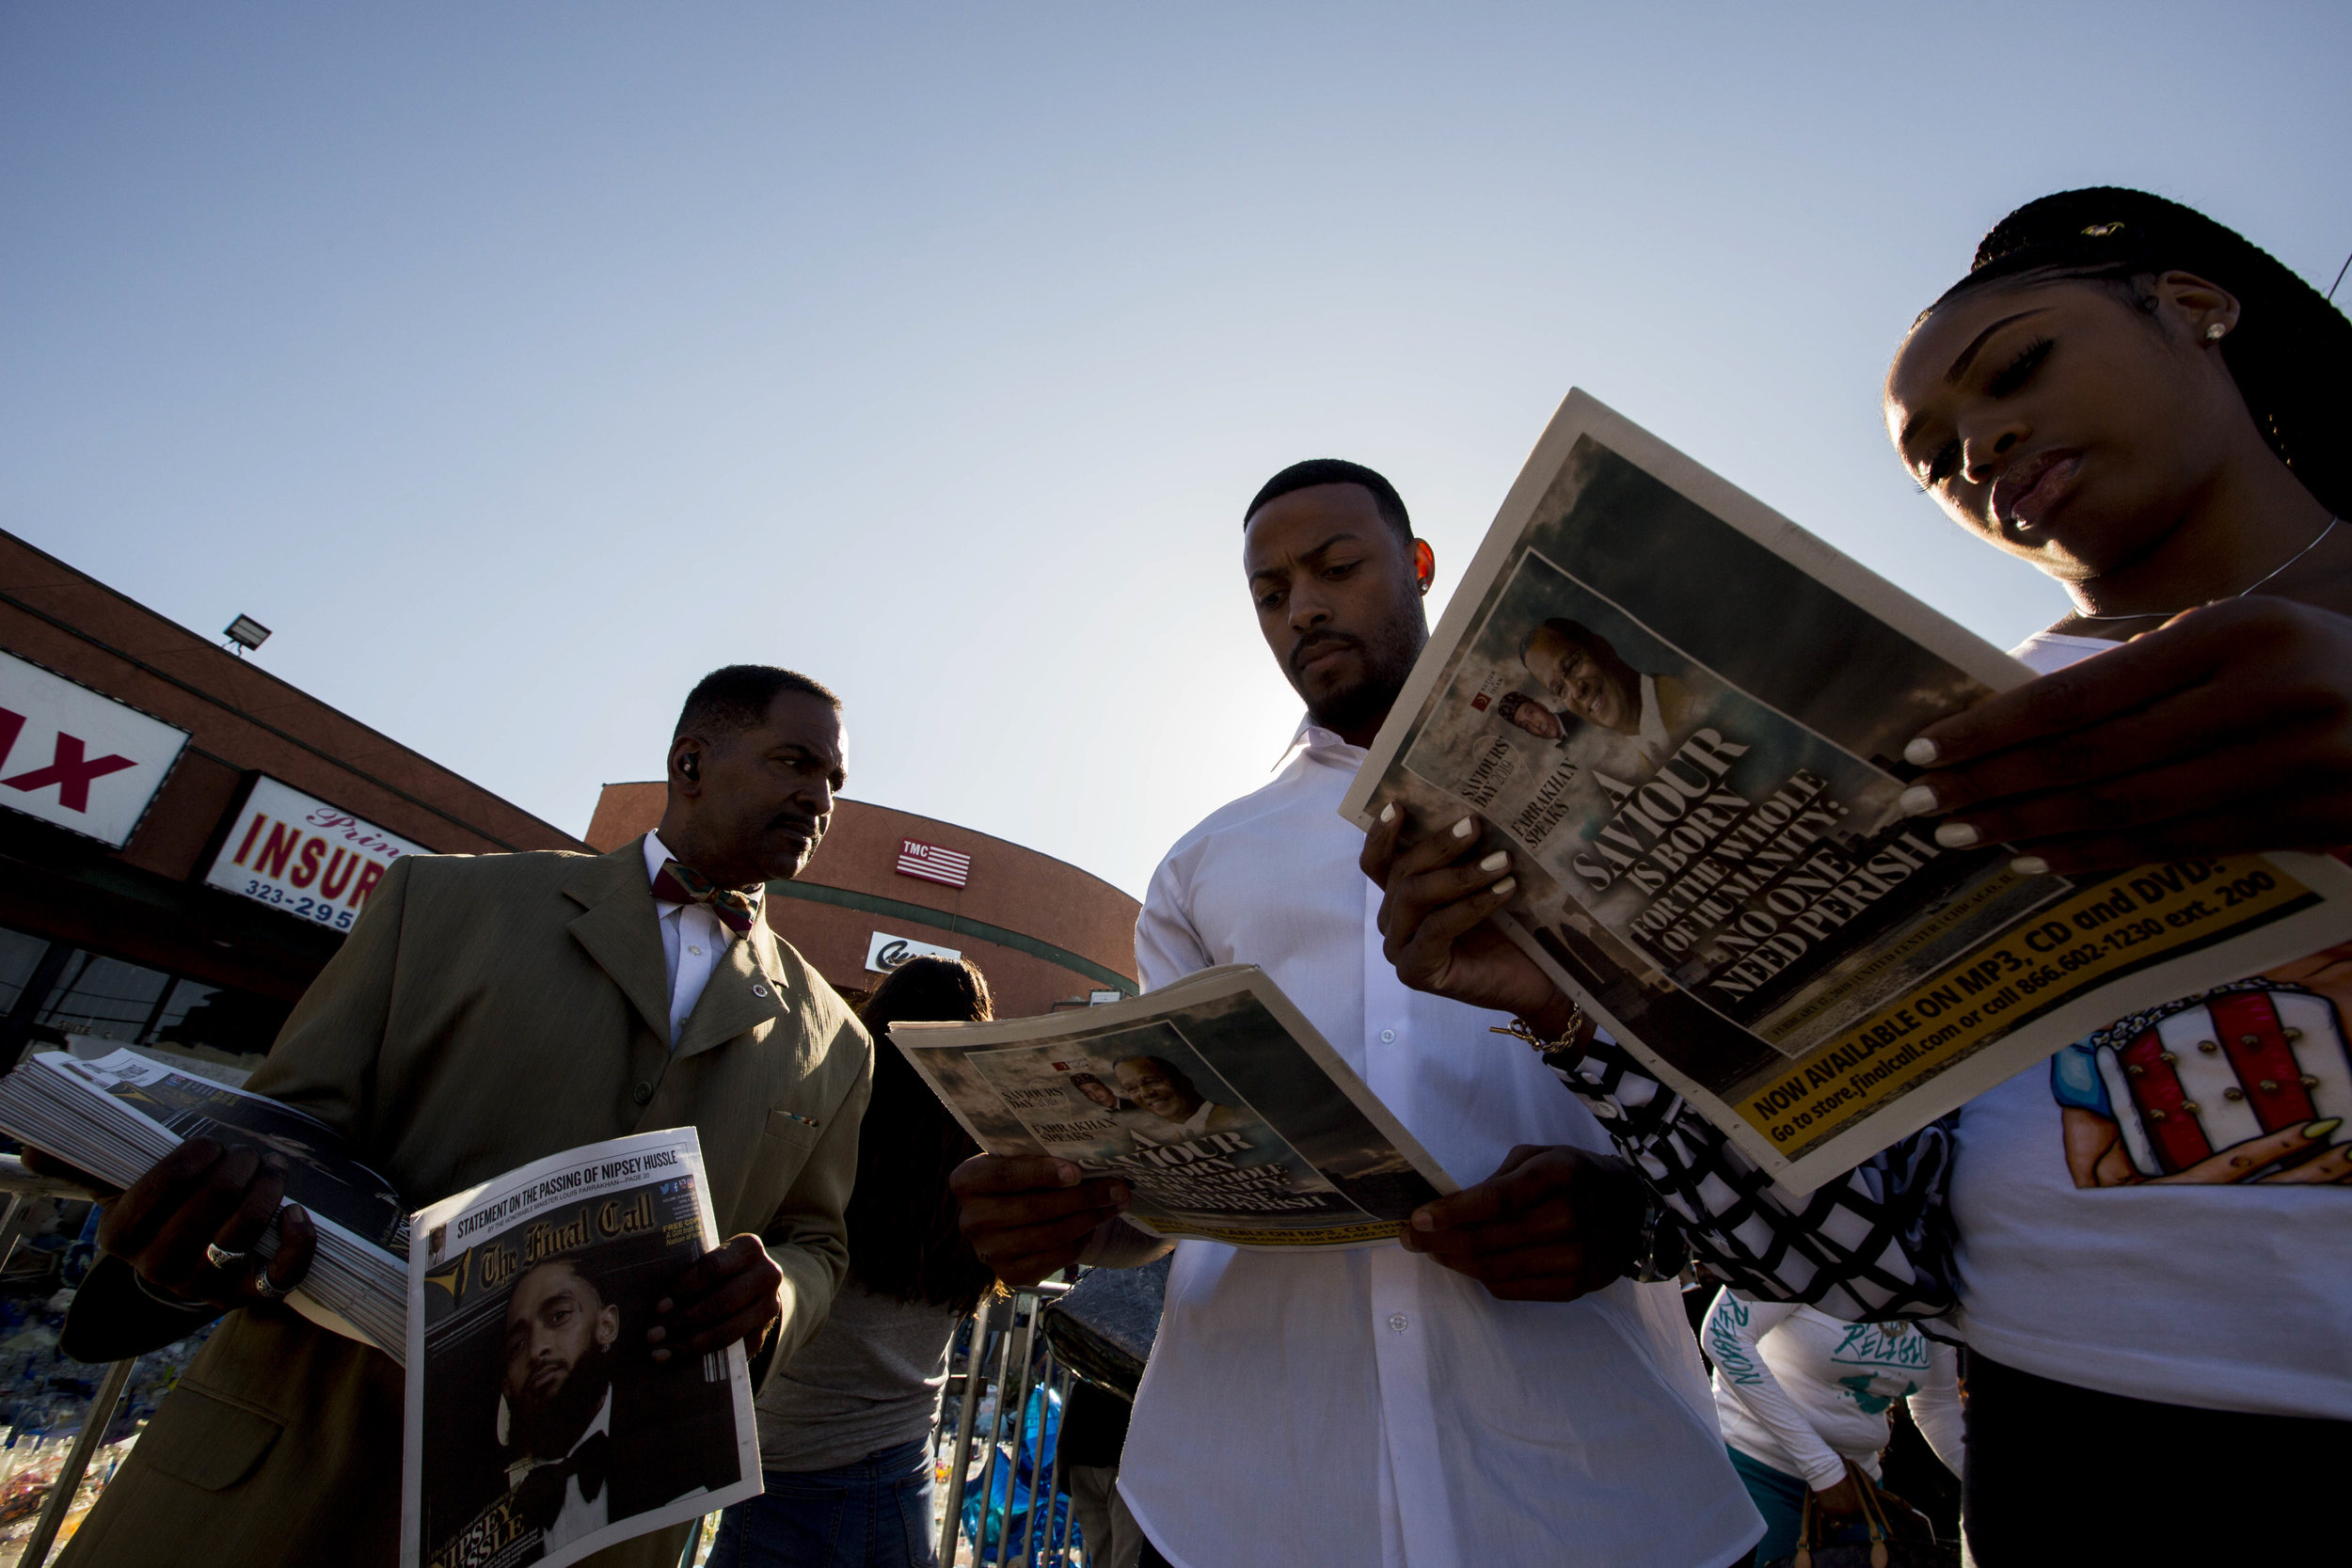 Nation of Islam members hand out copies of The Last Call newspaper, commemorating Nipsey Hussle on the cover, near the makeshift memorial at The Marathon Clothing store along Crenshaw Boulevard and Slauson Avenue in Los Angeles, California on Wednesday, April 10, 2019. The 33-year-old rapper was murdered on March 31 in front of The Marathon Clothing store which he owned. (Jose Lopez)